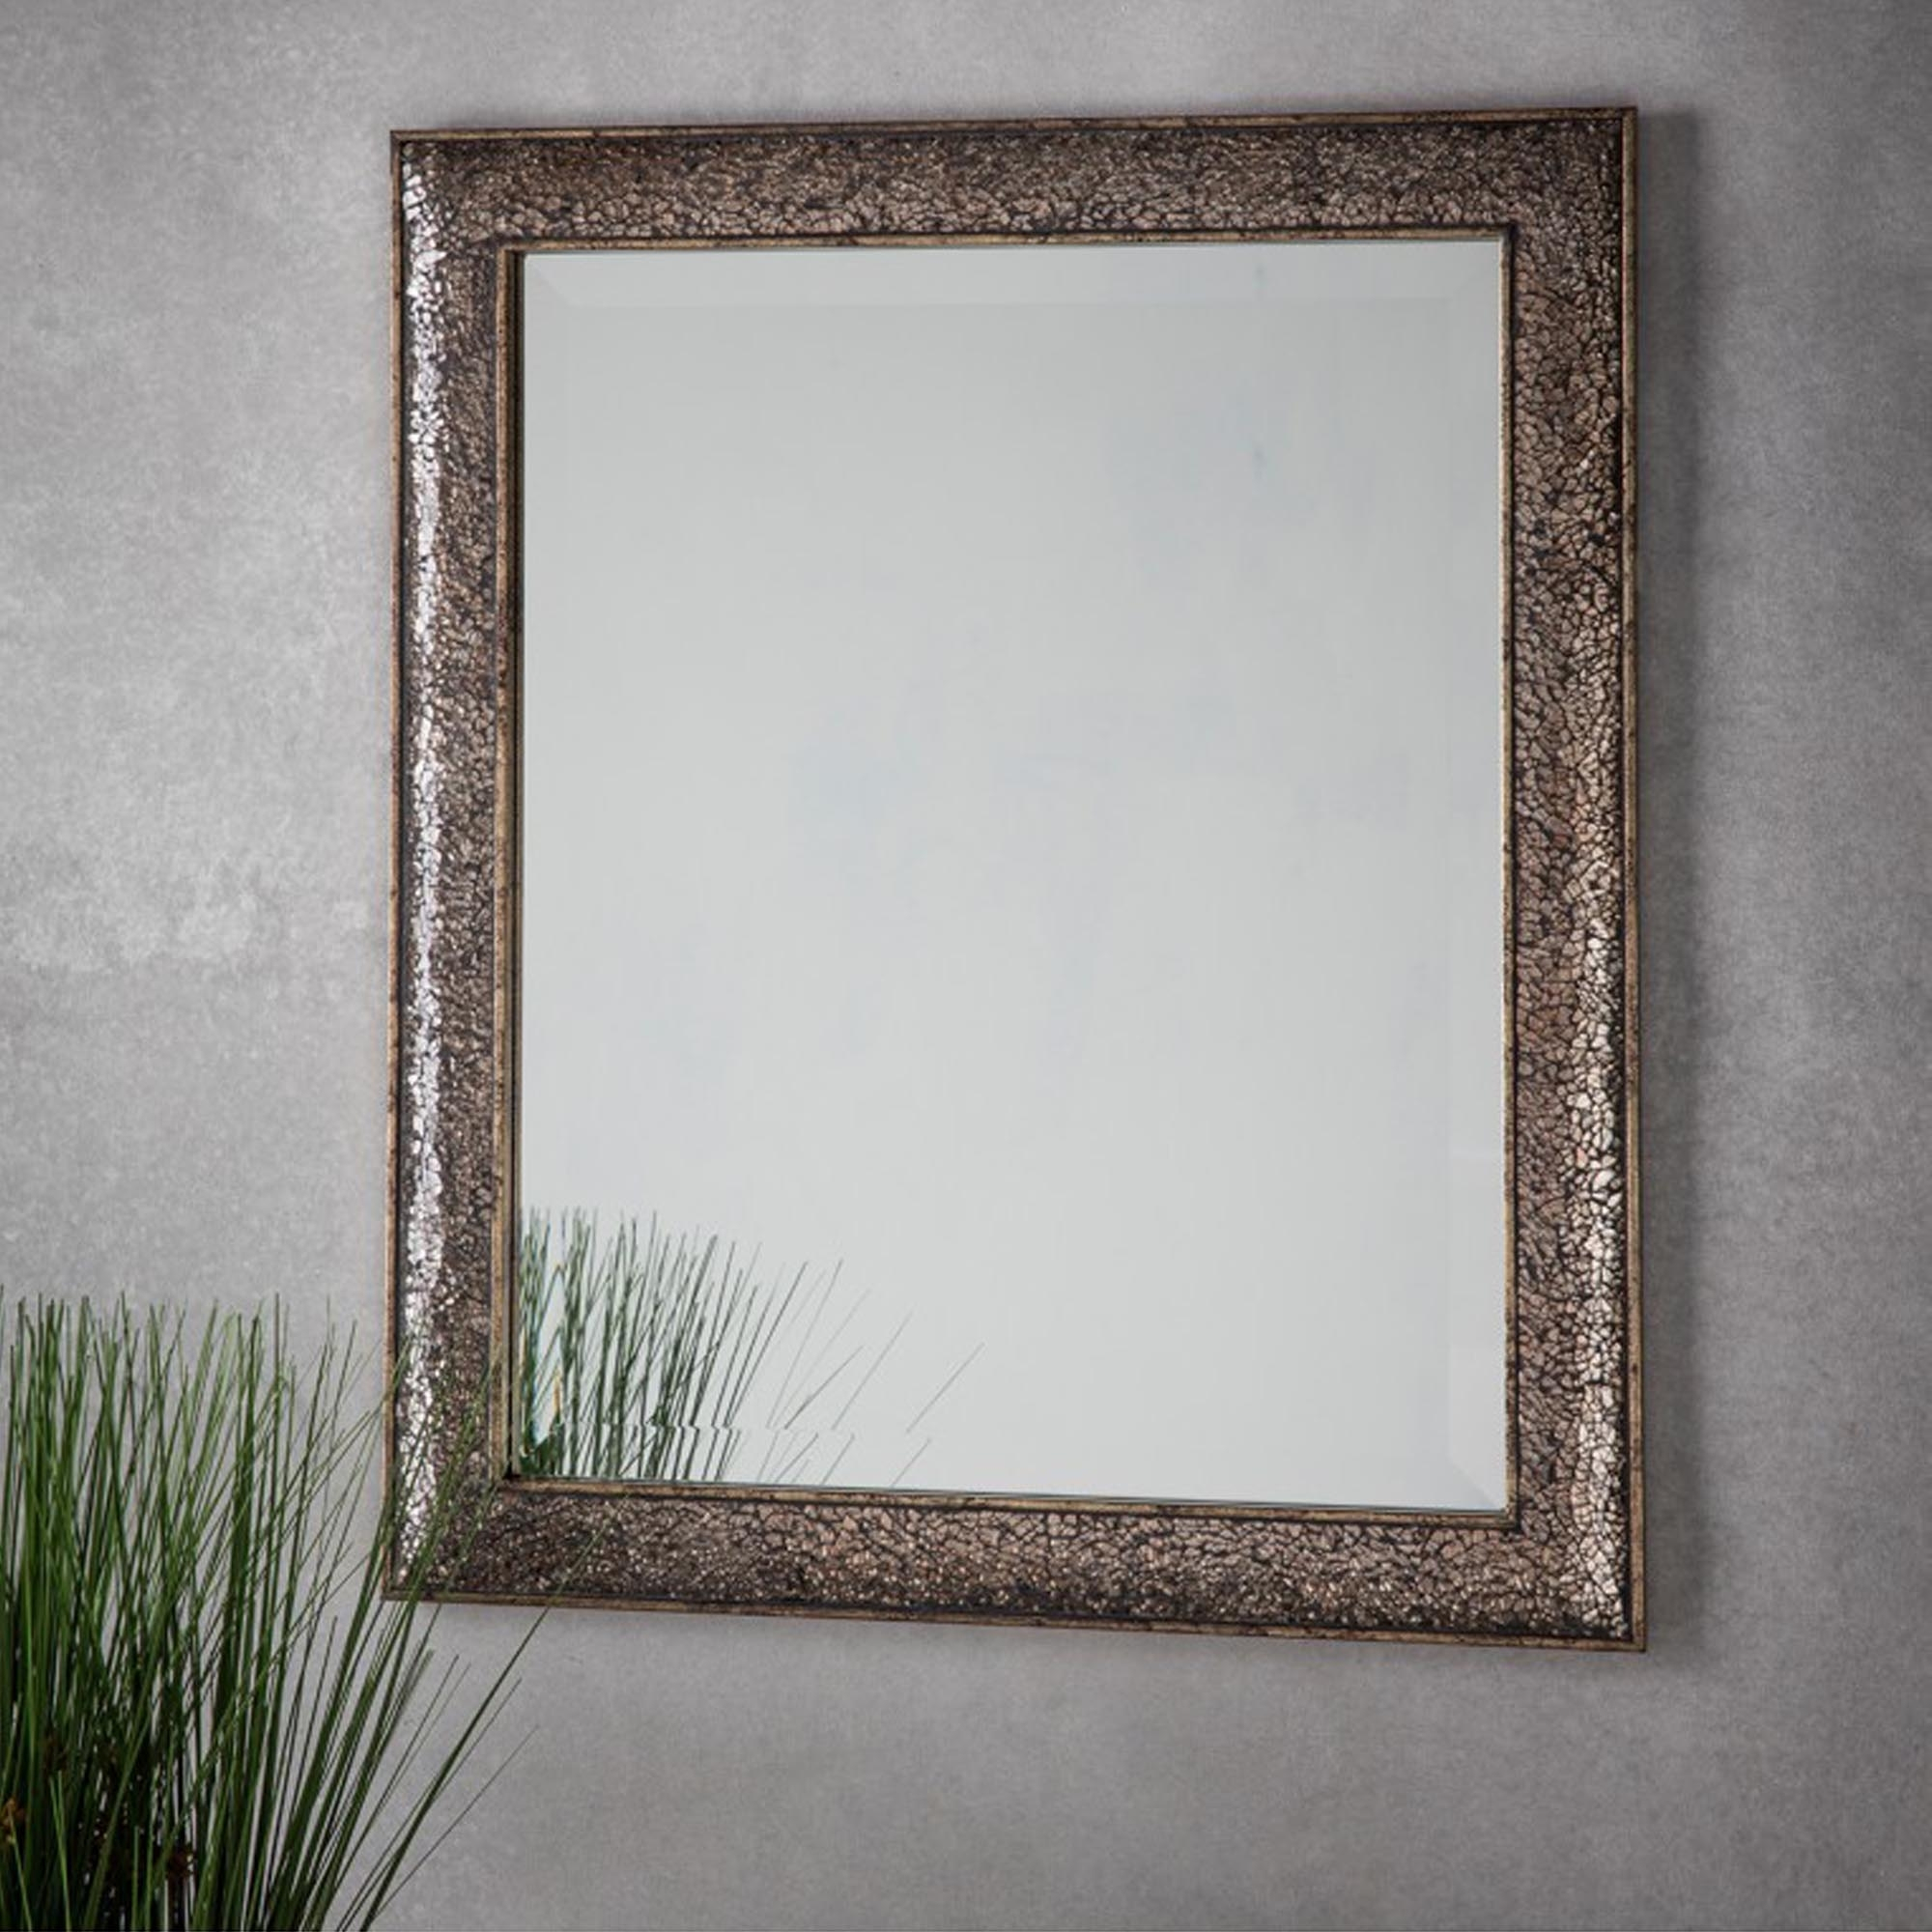 Contemporary Mirrors | Contemporary Wall Mirrors | Modern Intended For Industrial Modern & Contemporary Wall Mirrors (View 7 of 30)